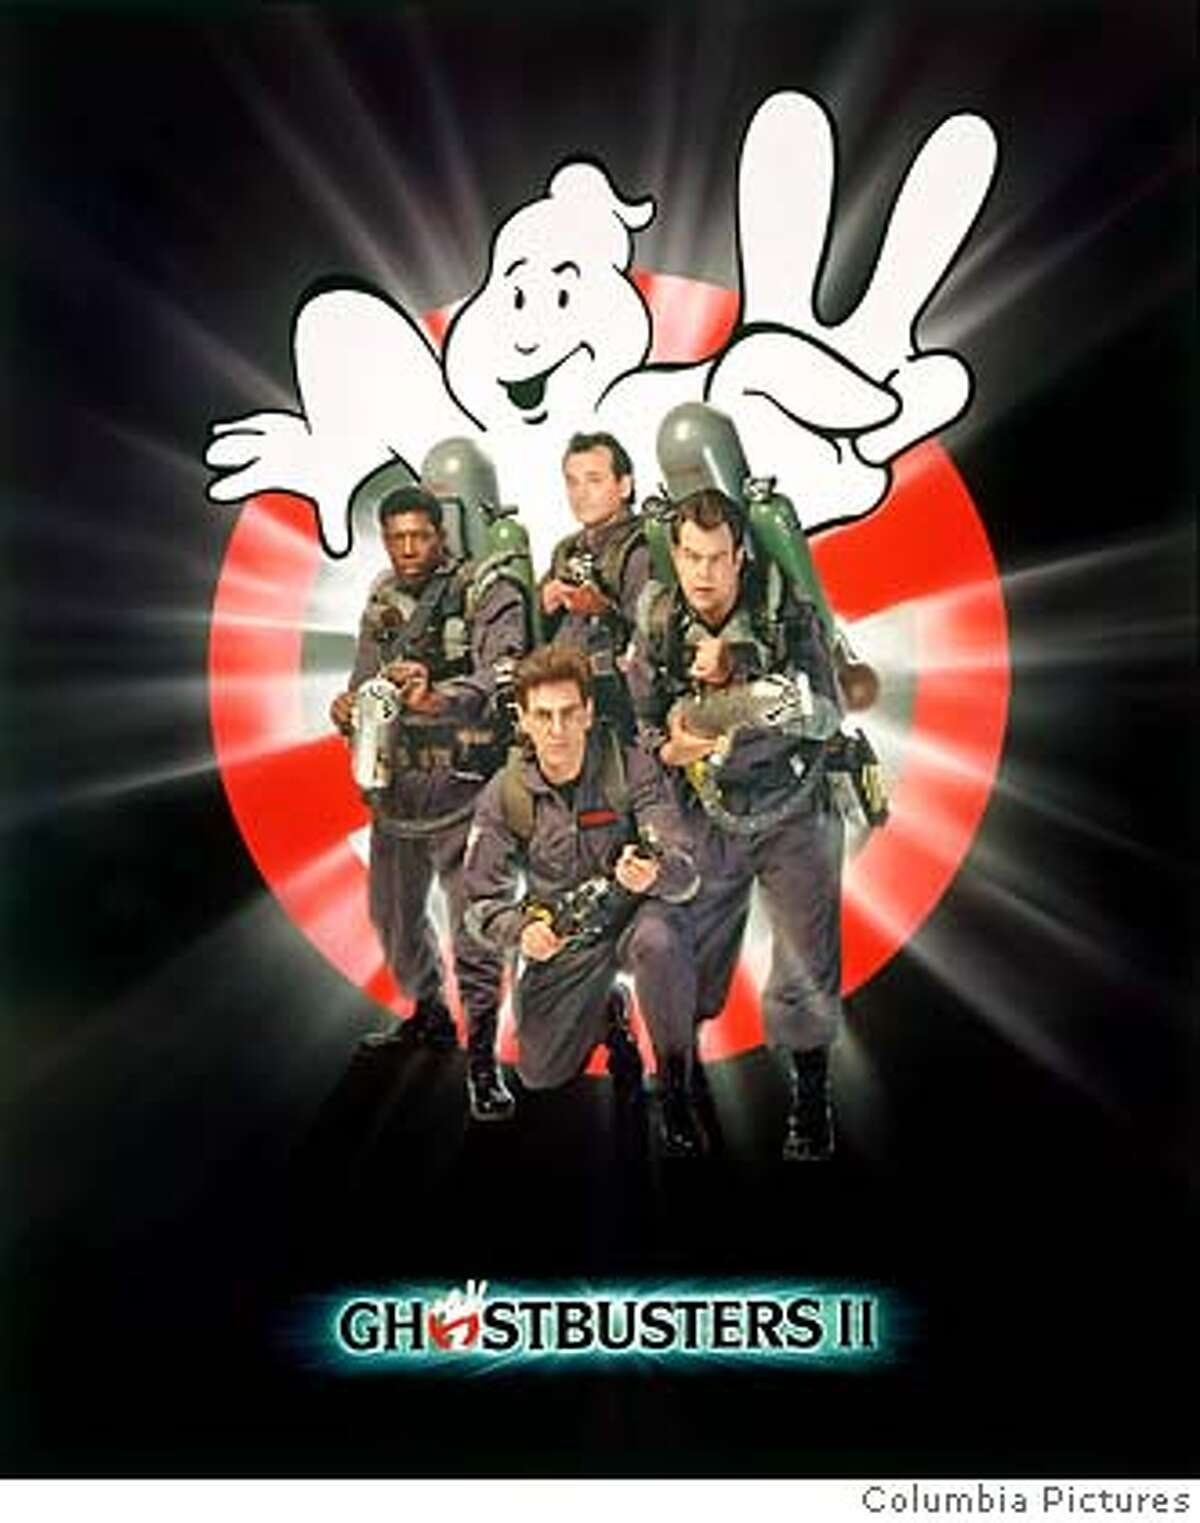 Jun 06, 1989; New York, NY, USA; Poster art for the sci-fi comedy adventure Ghostbusters II directed by Ivan Reitman. Mandatory Credit: Photo by Columbia Pictures Corporation/ZUMA Press. (�) Copyright 1989 by Courtesy of Columbia Pictures Corporation [Photo via NewsCom] For Editorial Use ONLY! Copyright Columbia Pictures Corporation!